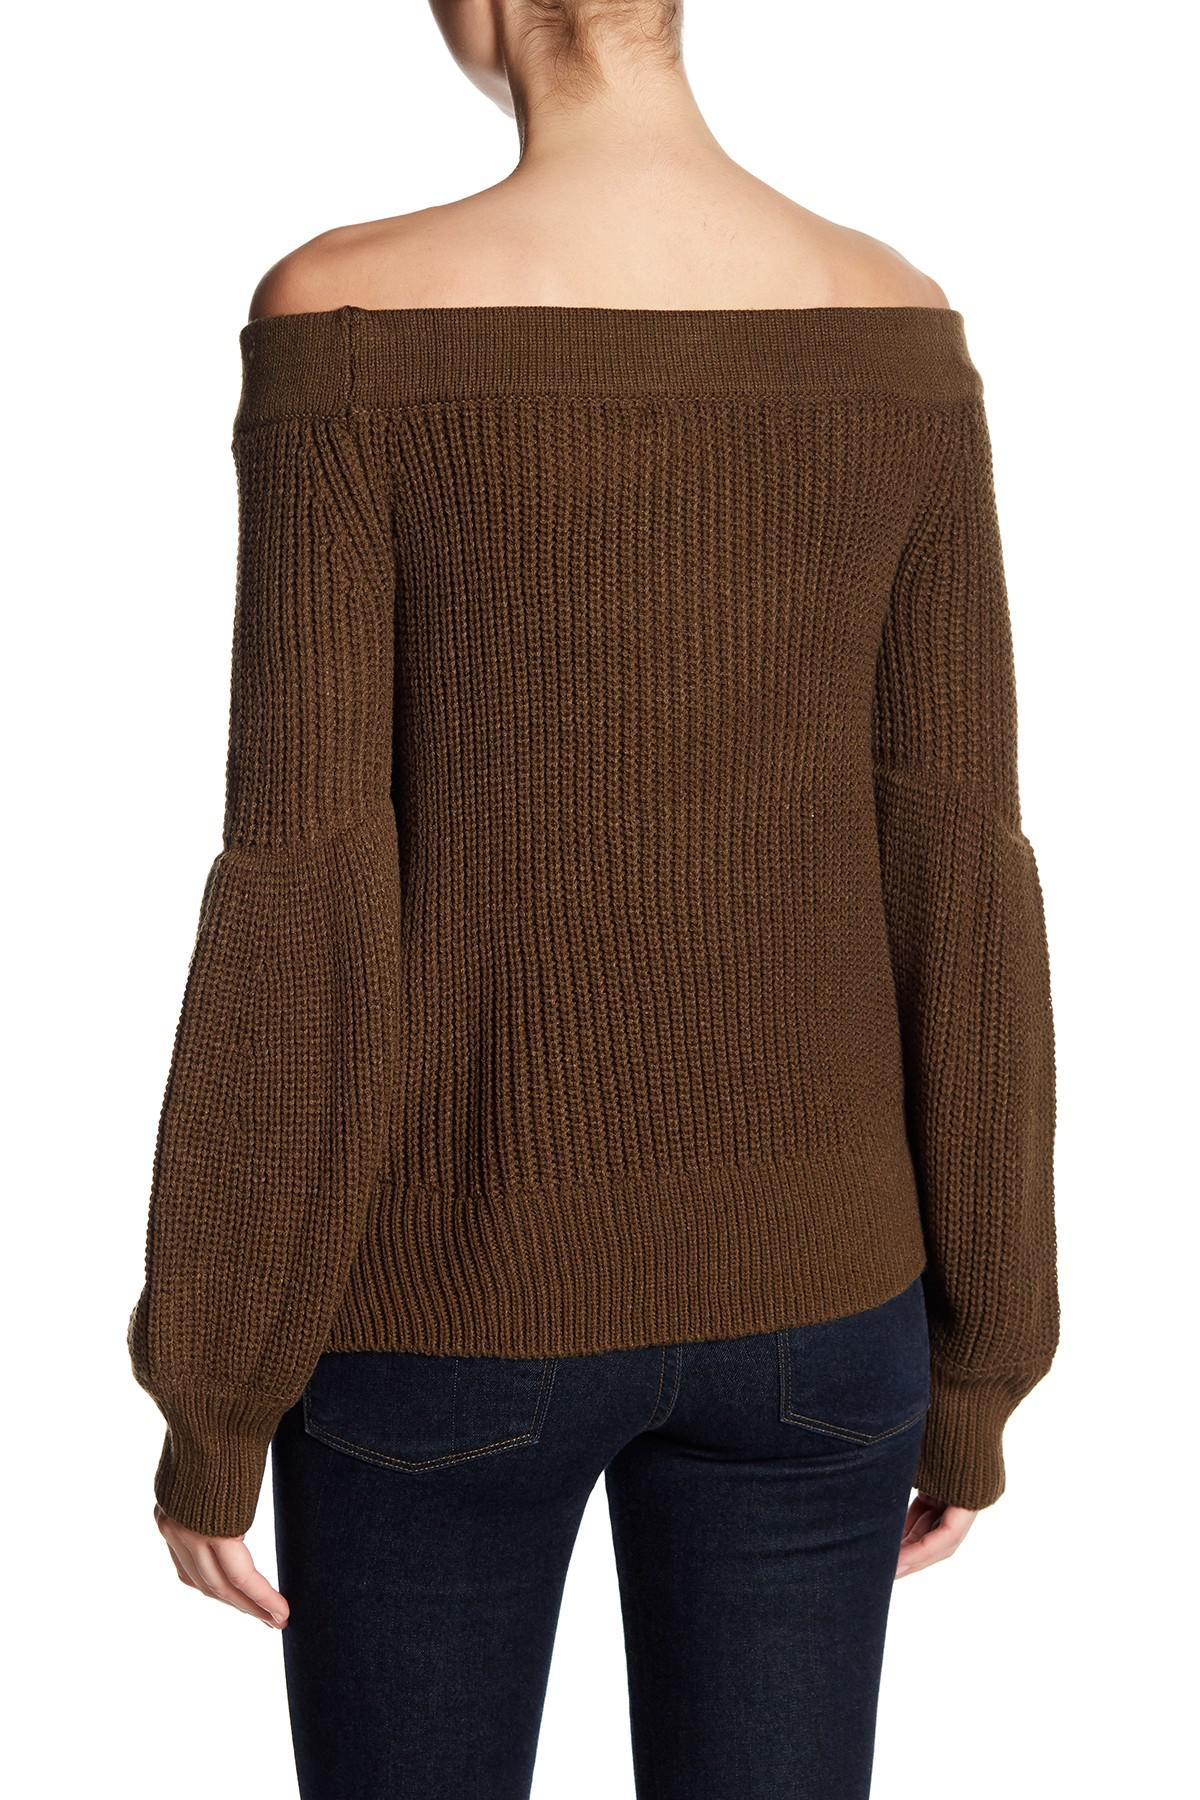 Haute rogue Boxy Off-the-shoulder Sweater in Green | Lyst